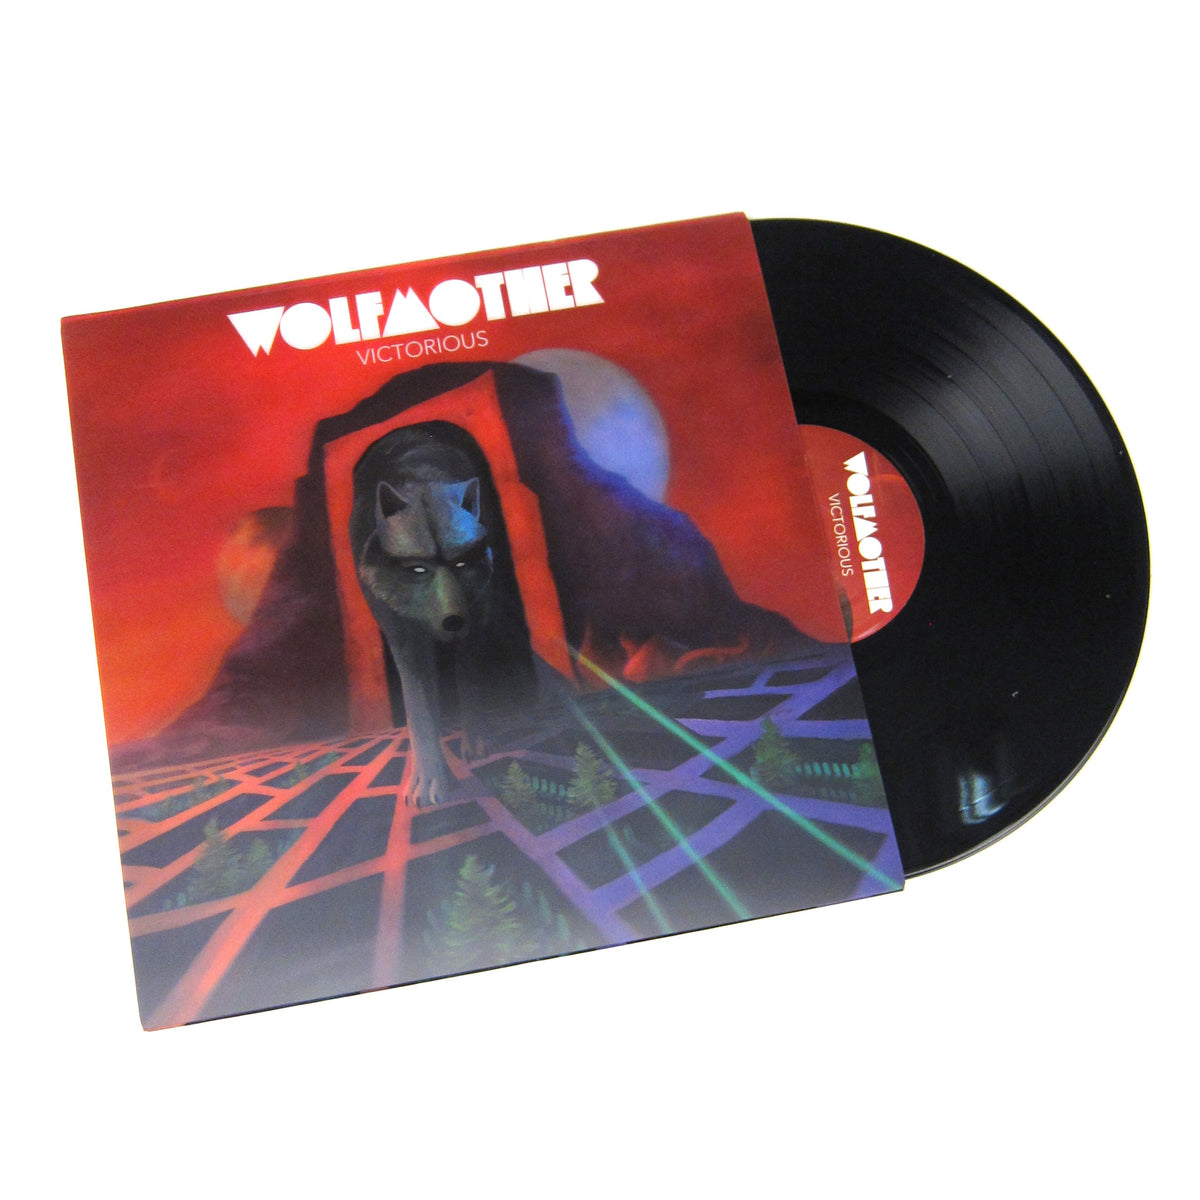 Wolfmother: Victorious (180g) Vinyl LP